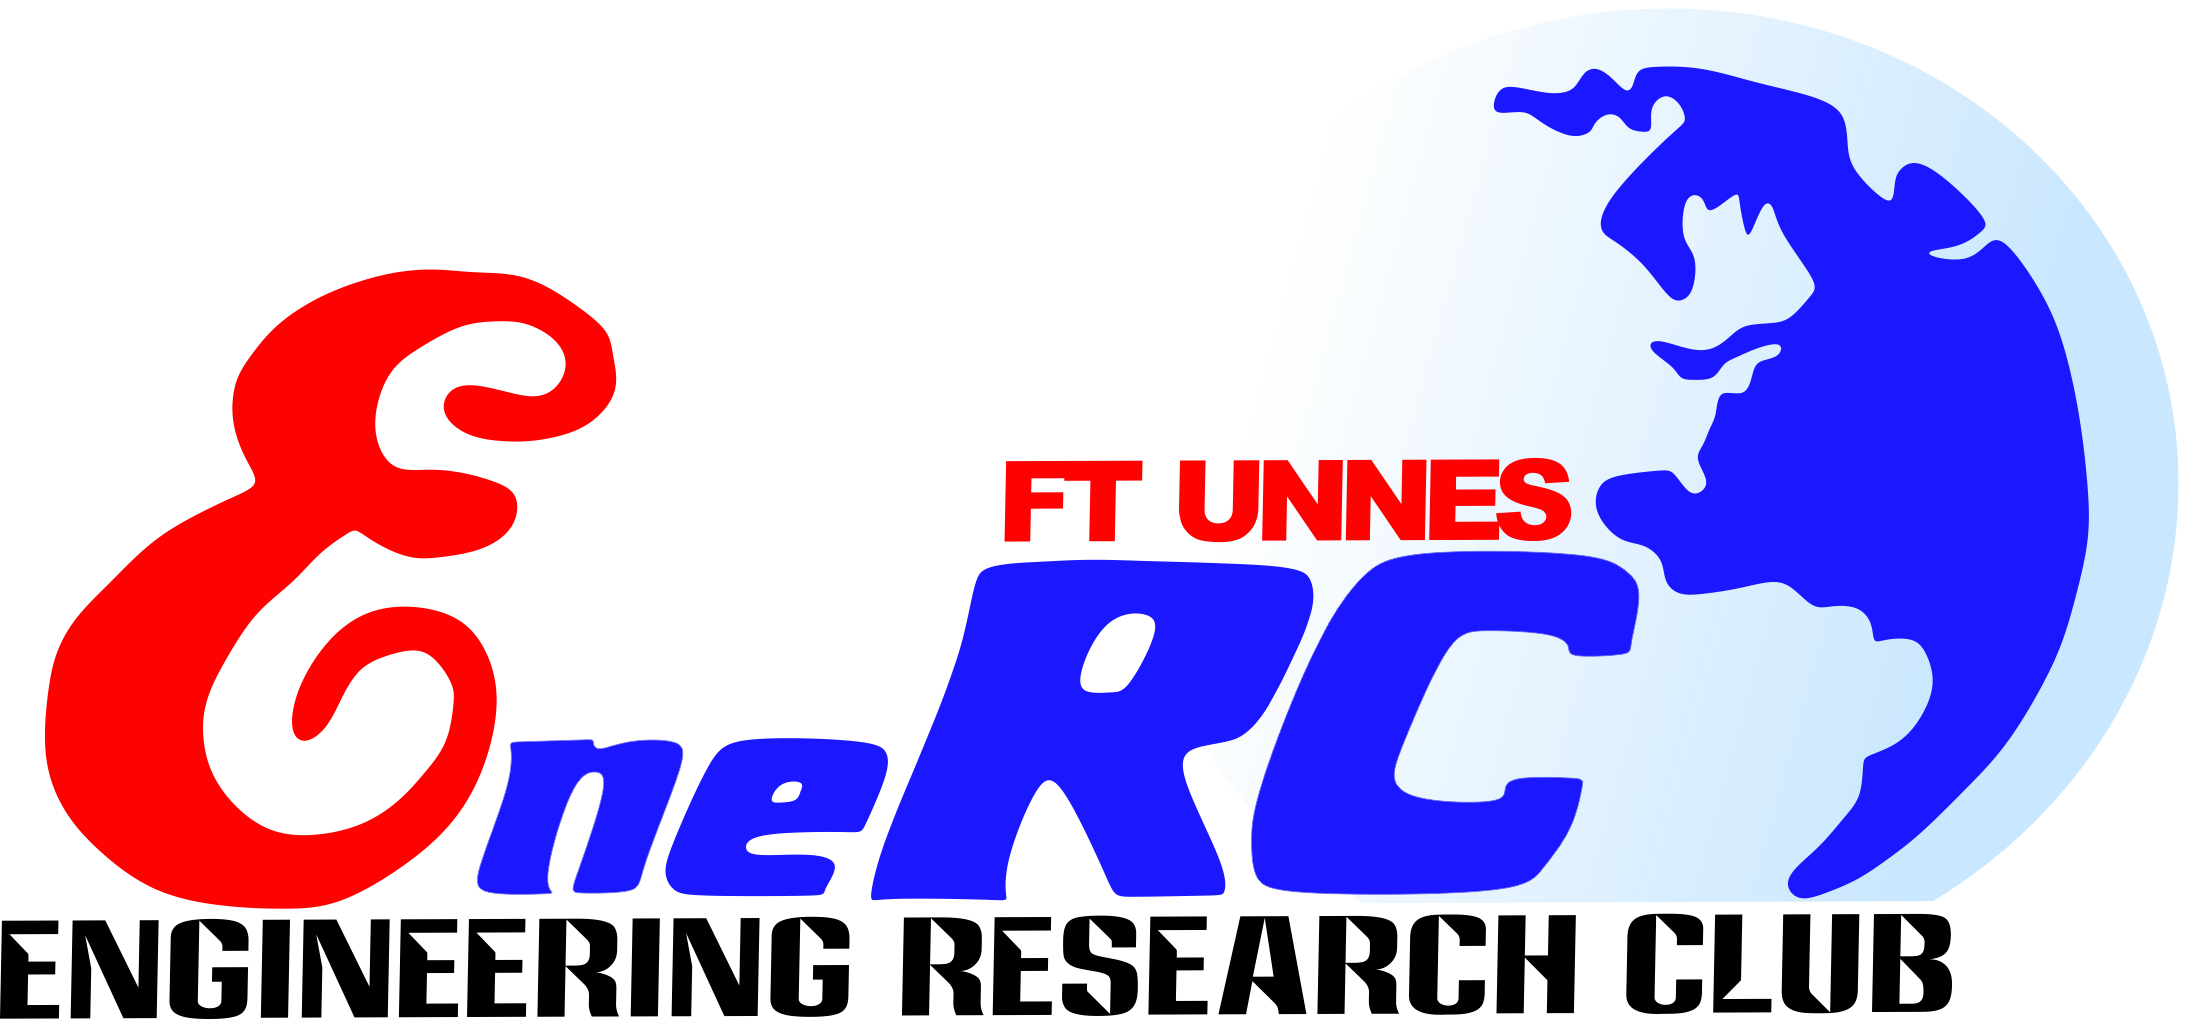 EneRC FT UNNES